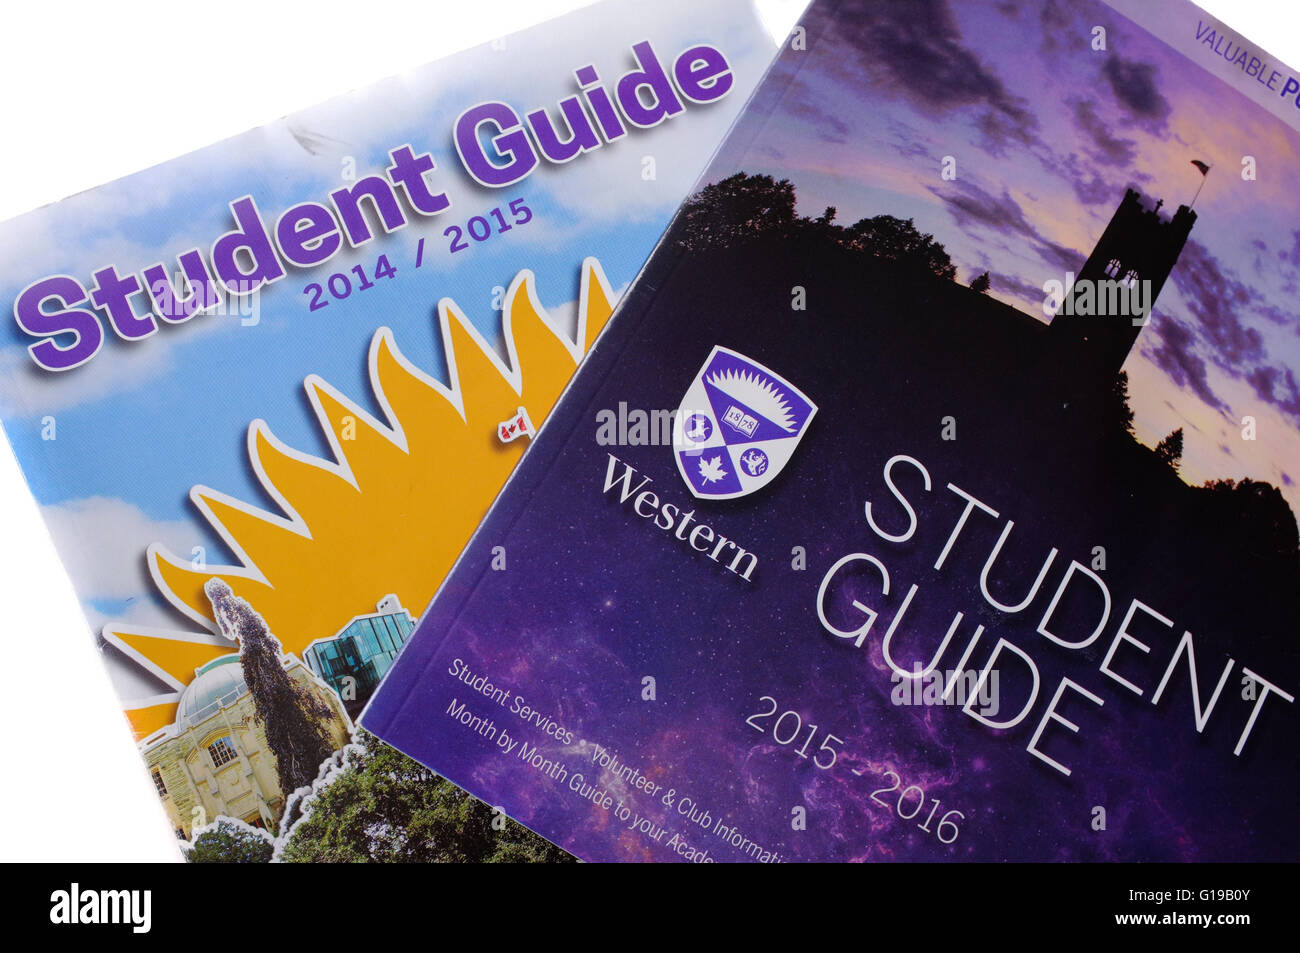 Student Guide books for the Canadian University of Western Ontario photographed against a white background. - Stock Image